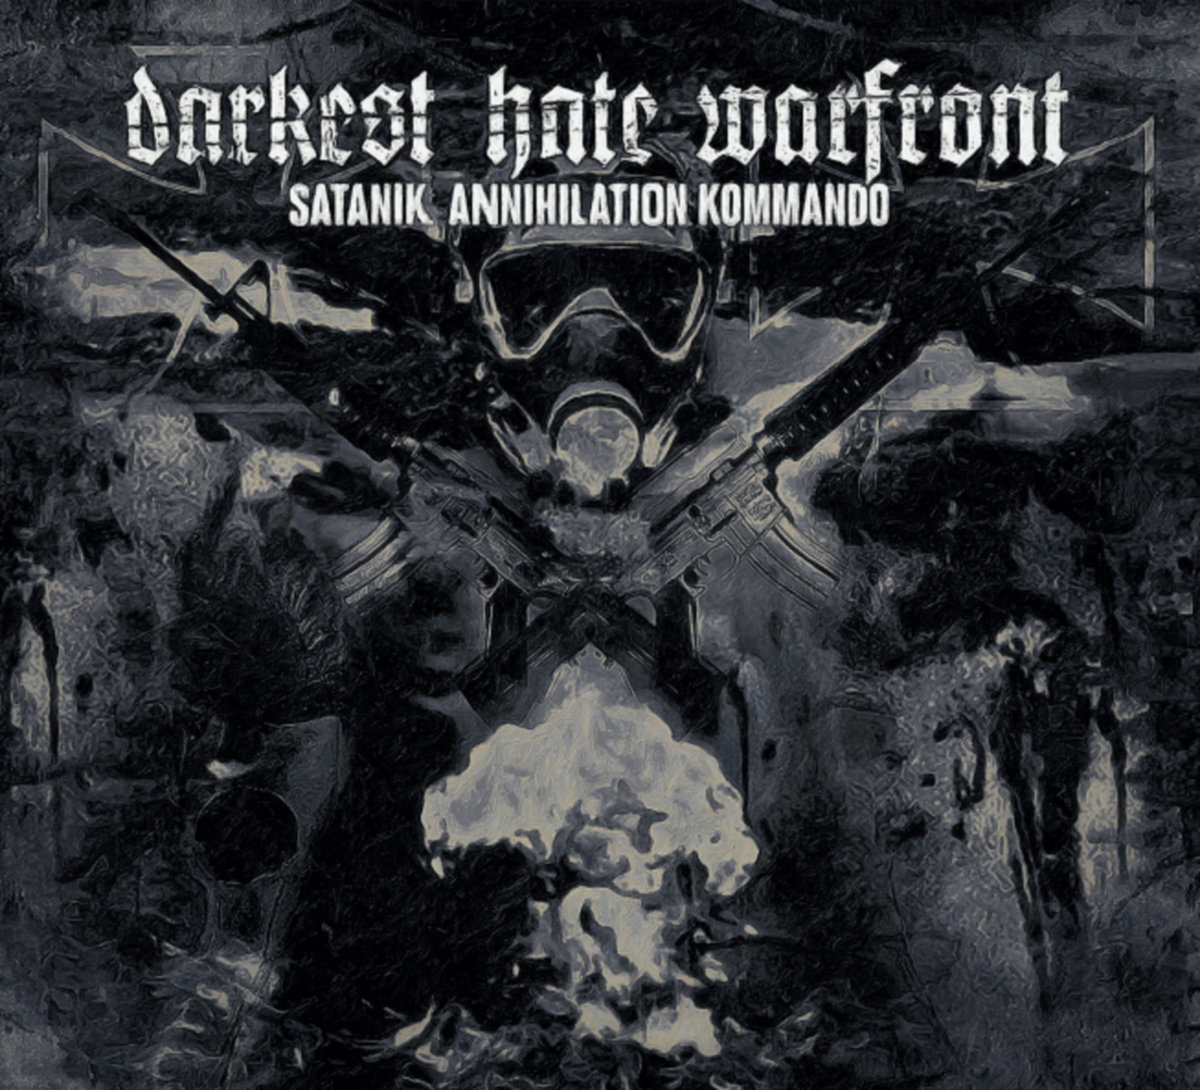 Darkest Hate Warfront - Satanik Annihilation Kommando